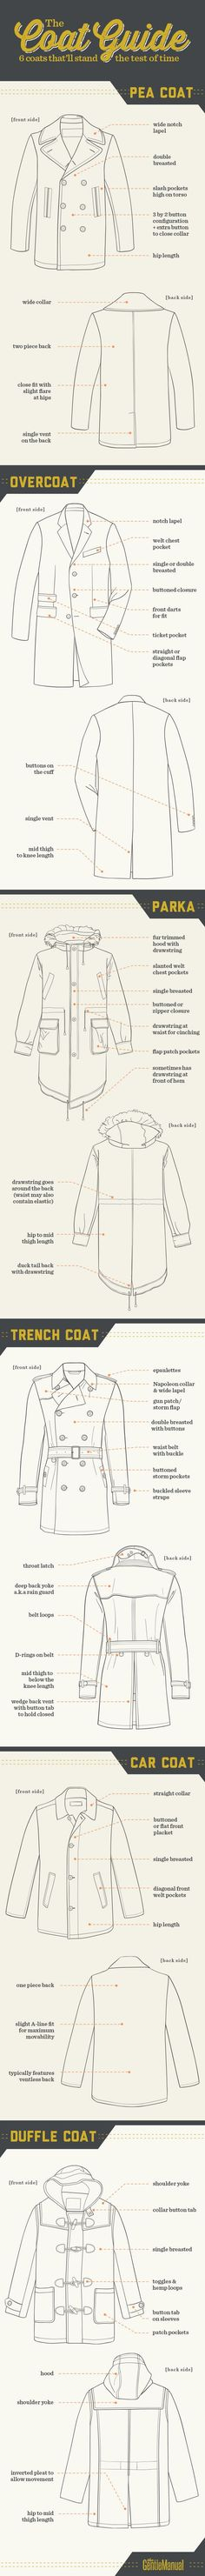 6 coat styles every man should know about.  Stay warm and dapper from this guide and infographic from the GentleManual, the cool people of Ties.com.